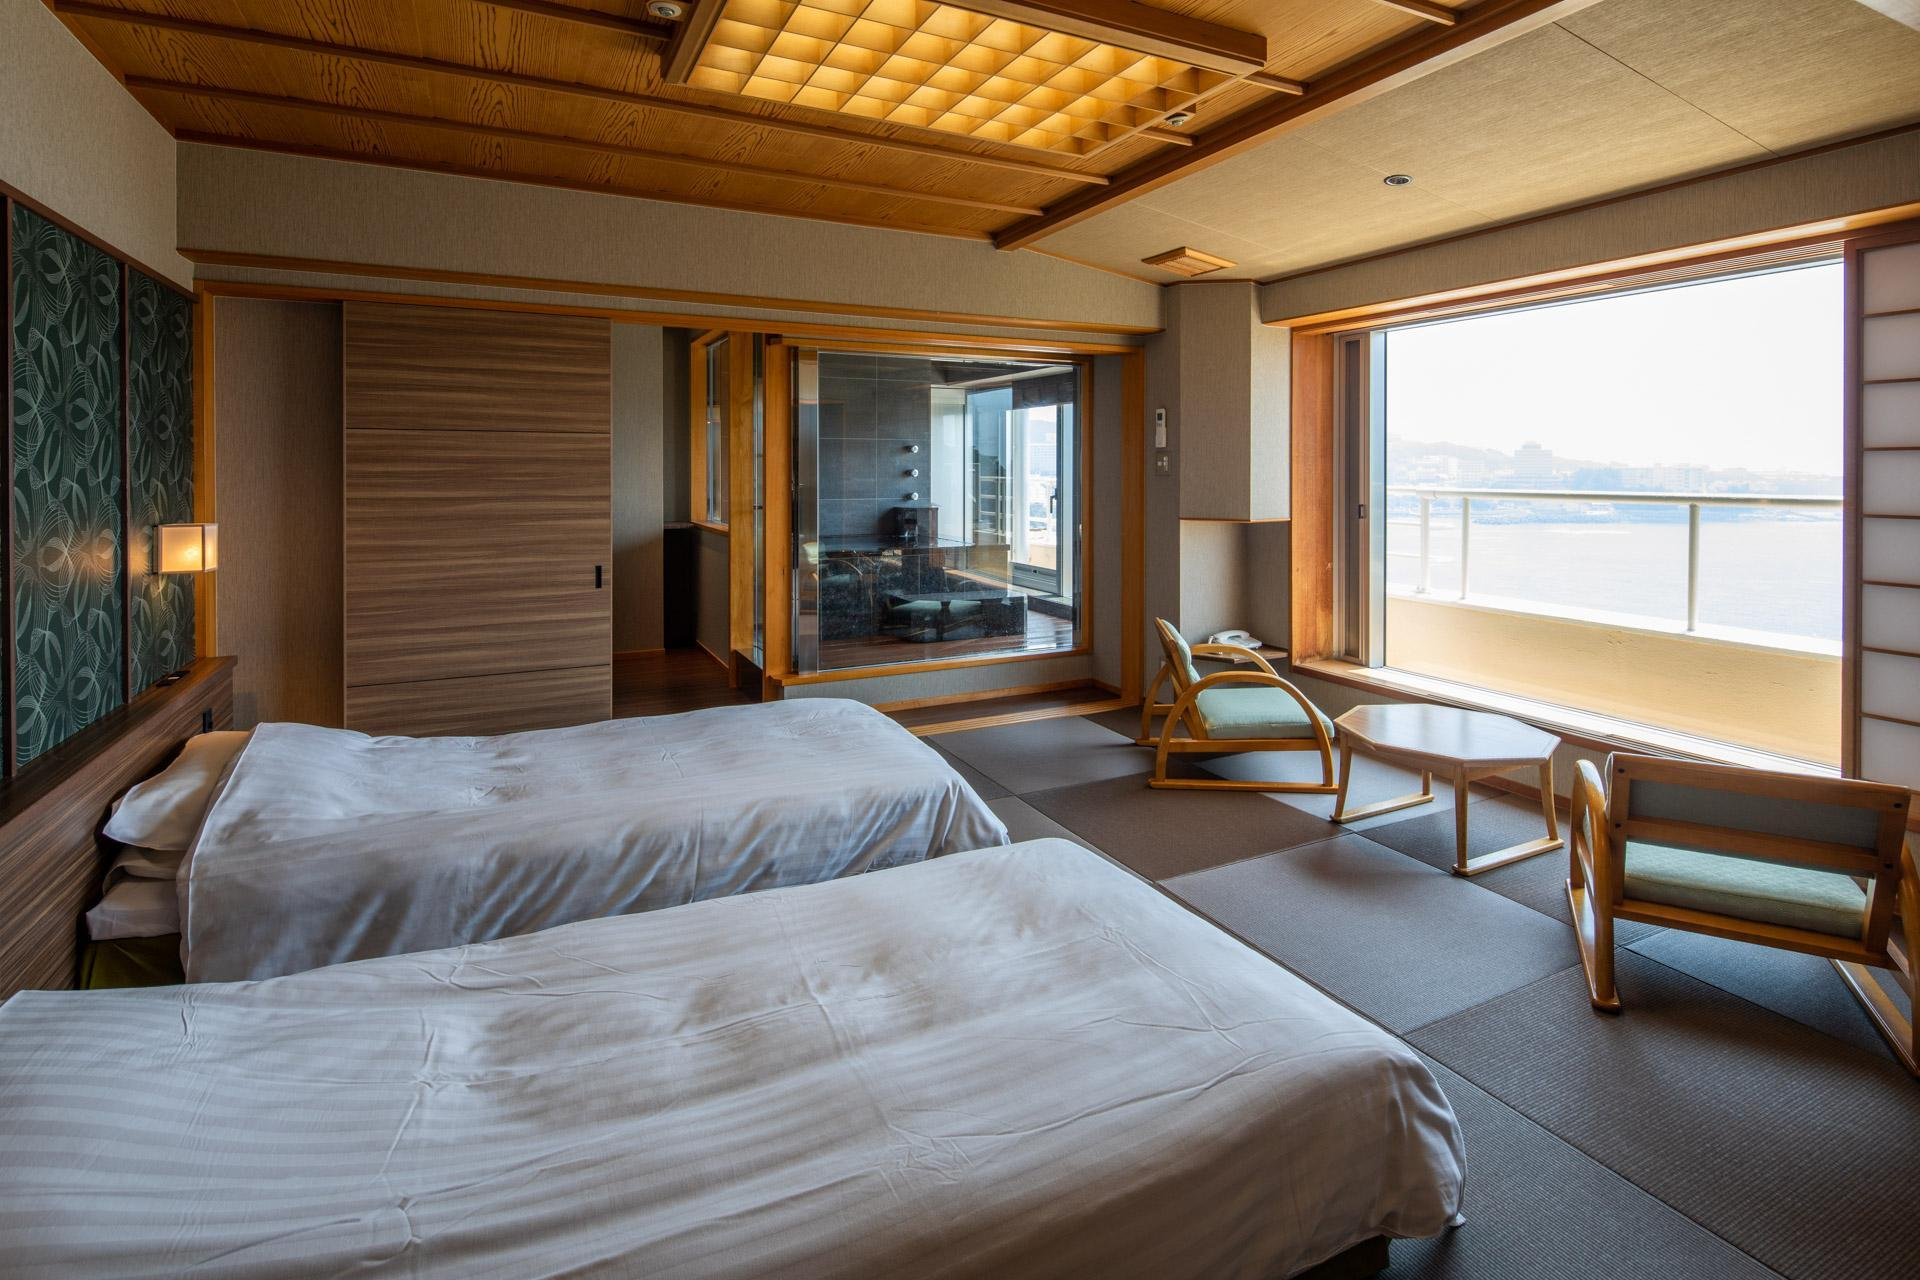 Luxury Deluxe Japanese Western Style Suite with Open-Air Bath